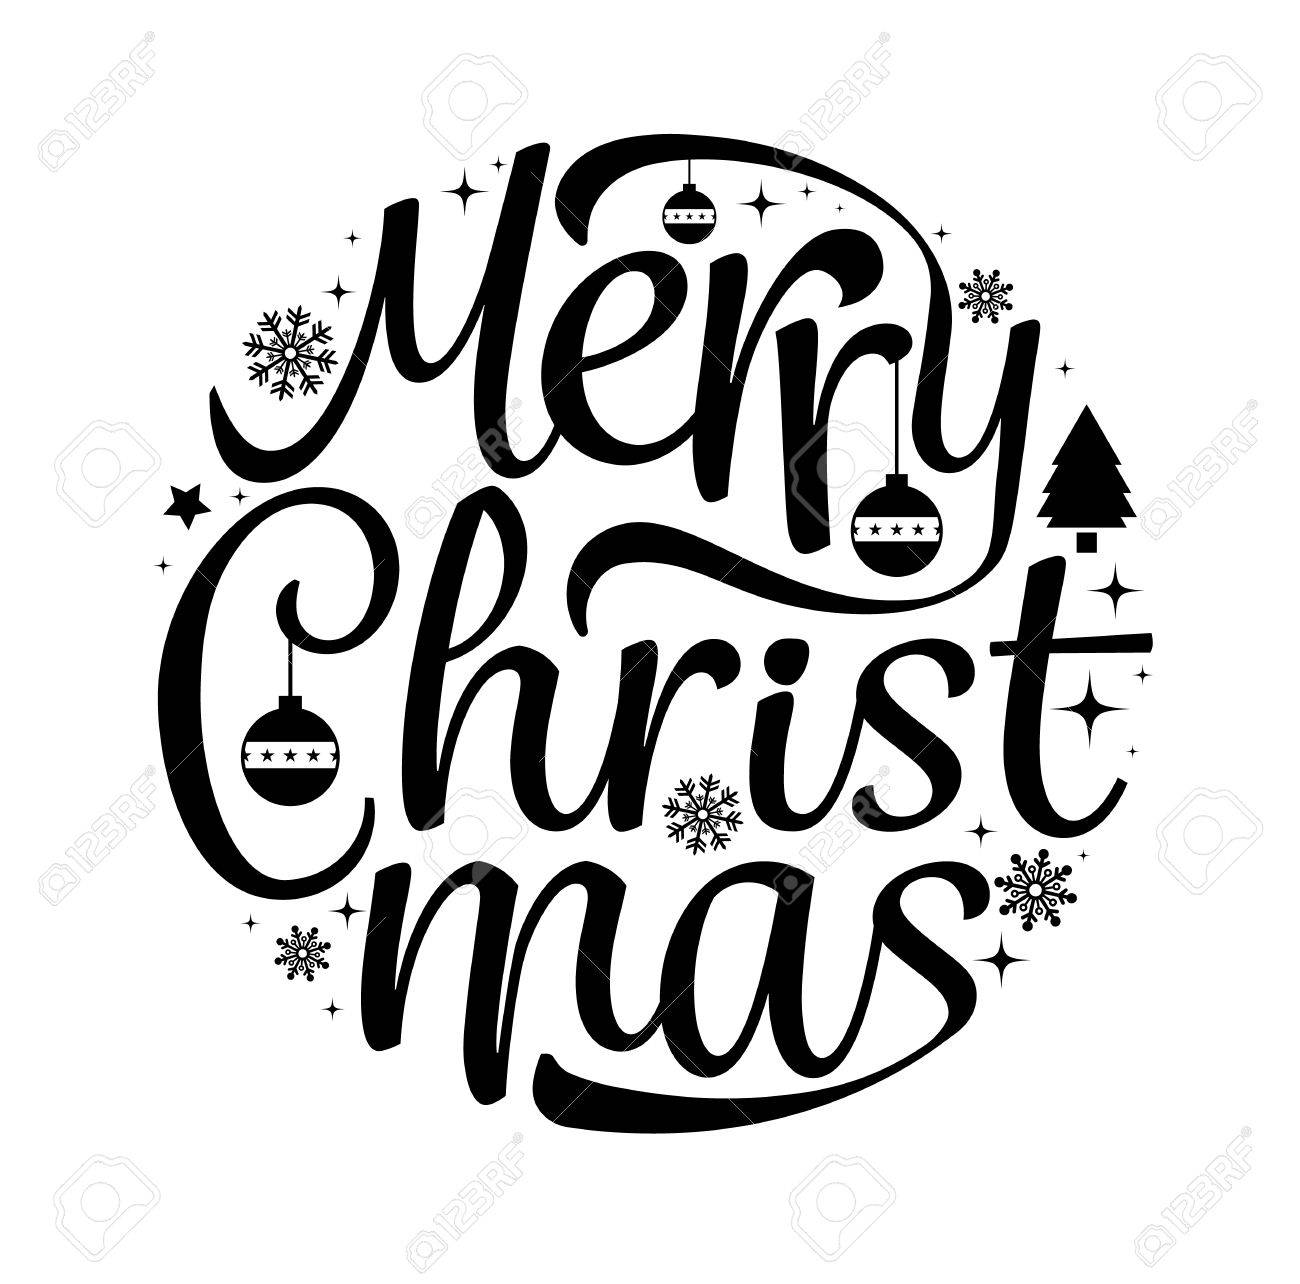 Merry Christmas Text Free Hand Design Isolated On White Background ...